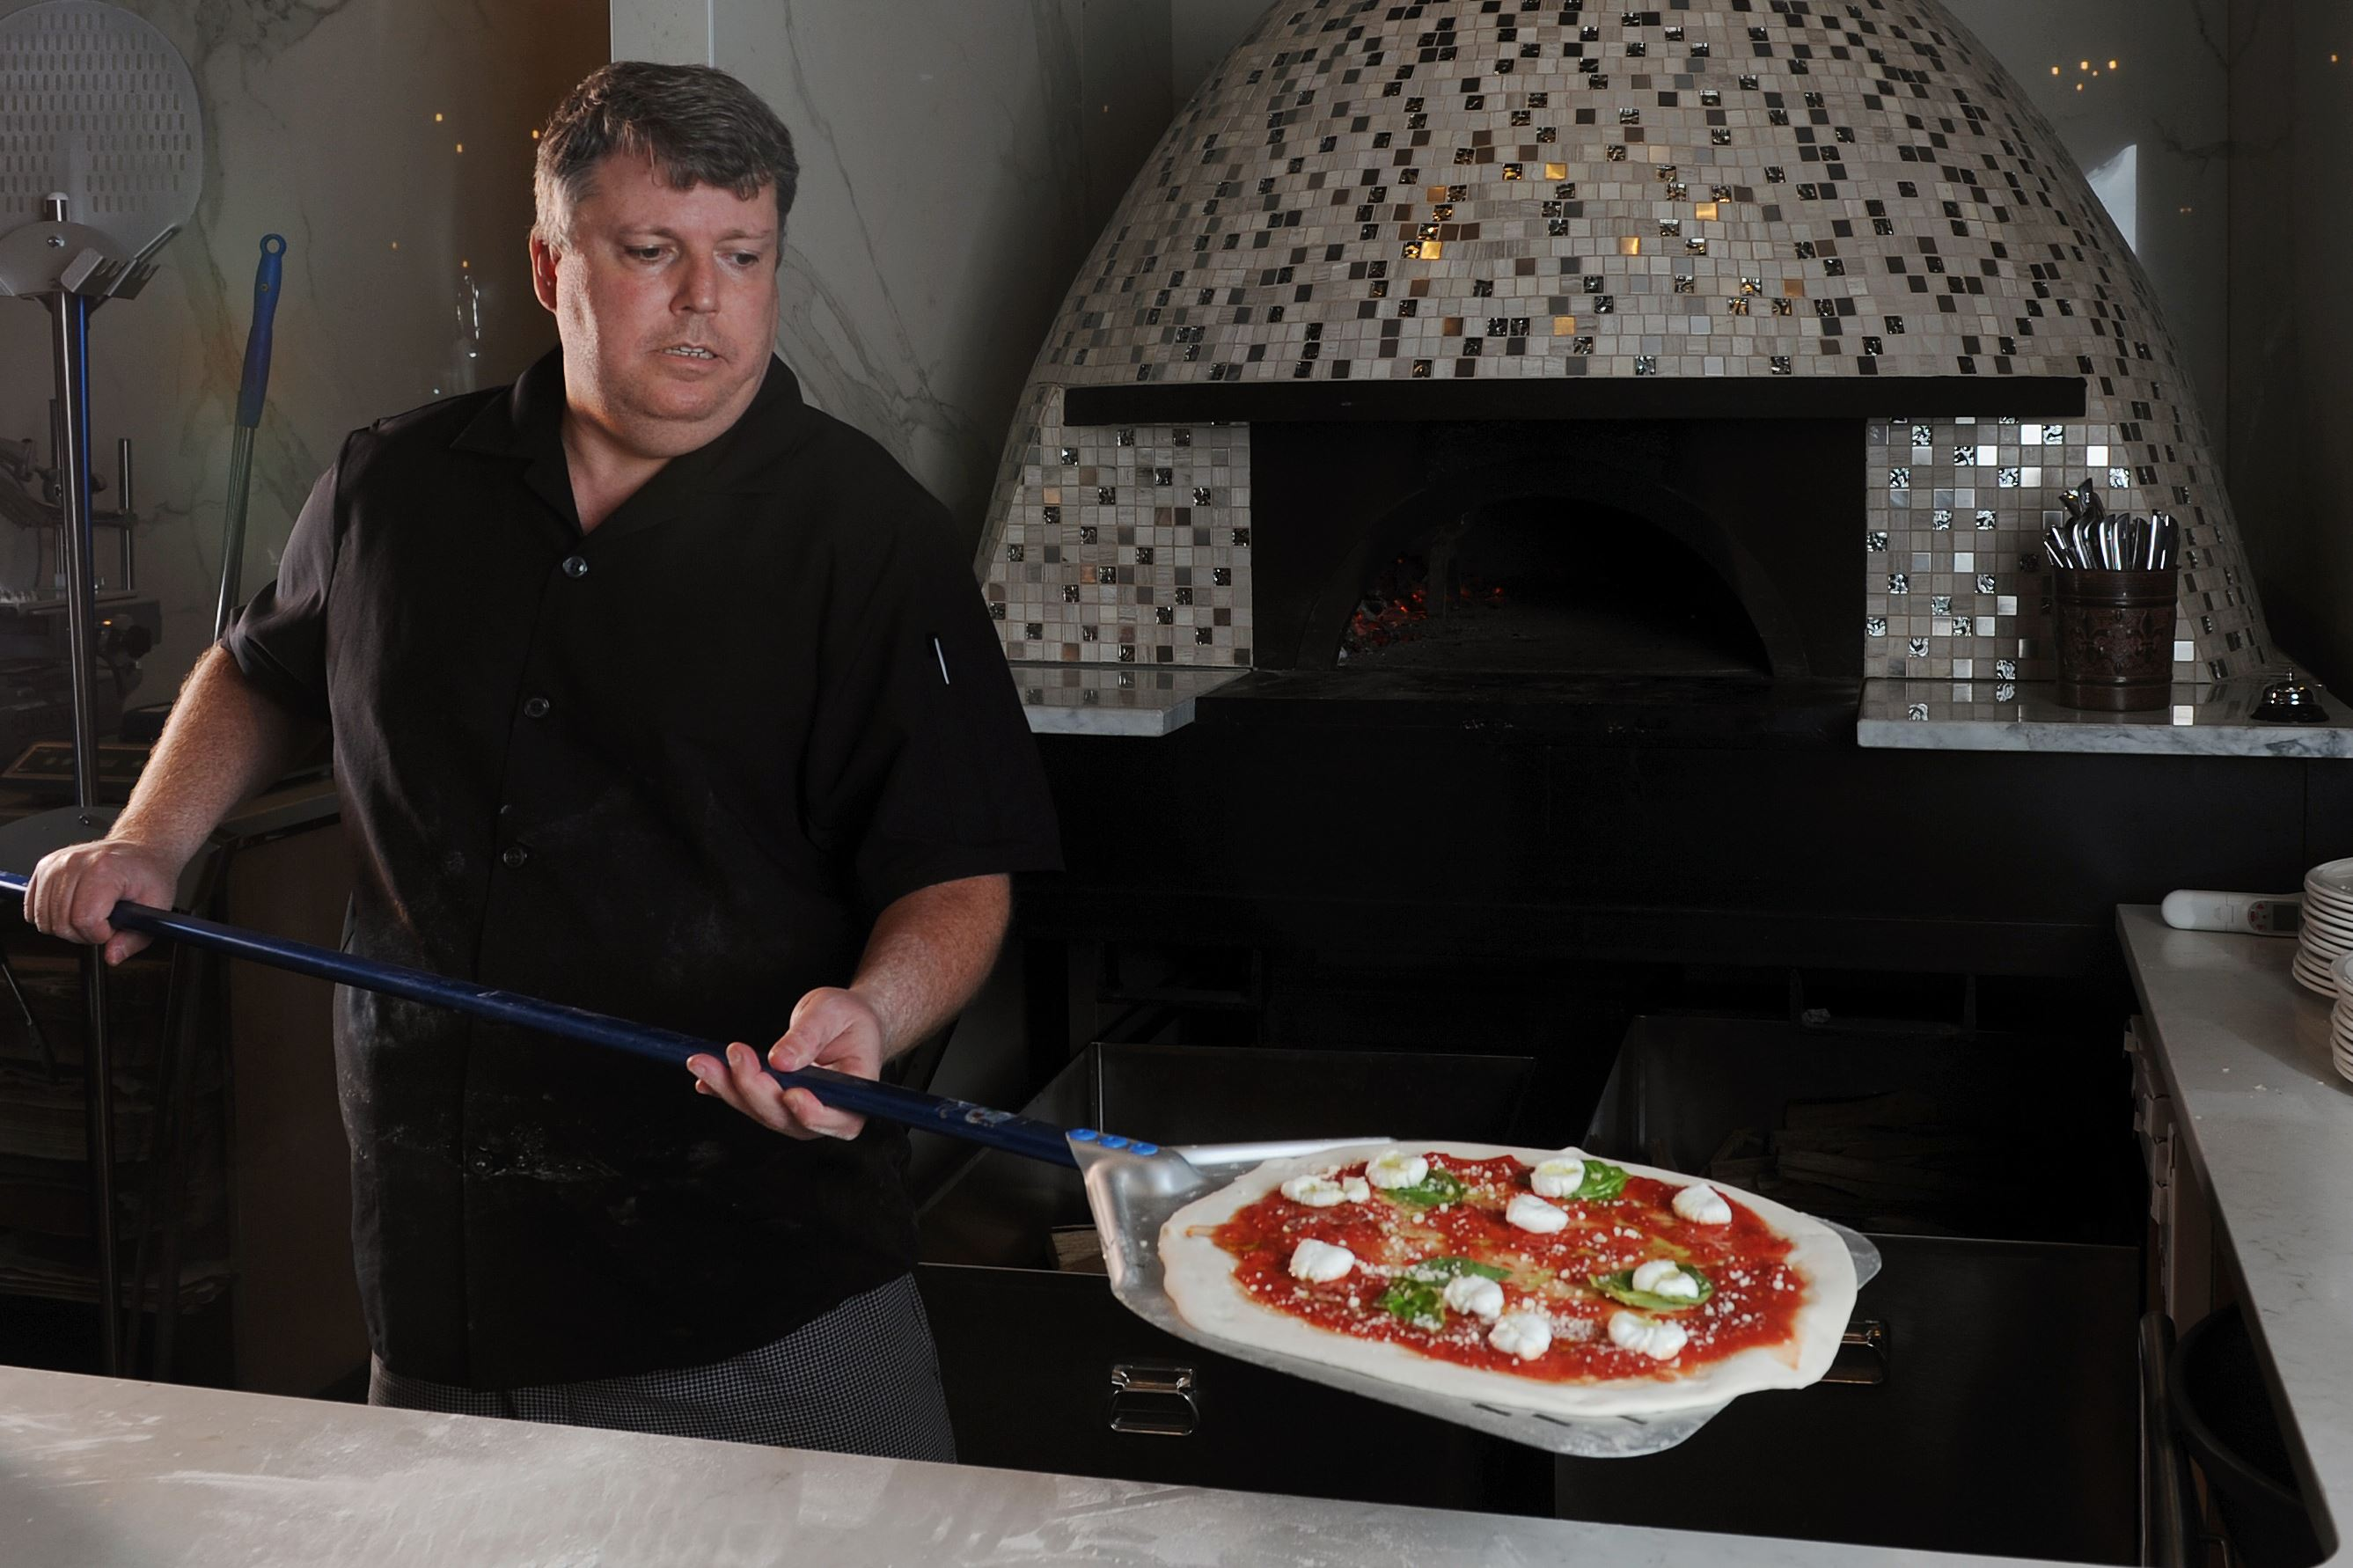 20170601ng-Pizzaiola1 Ron Molinaro, executive chef and owner of Il Pizzaiolo in Glenshaw, prepares a high-quality, Neapolitan-style pizza.